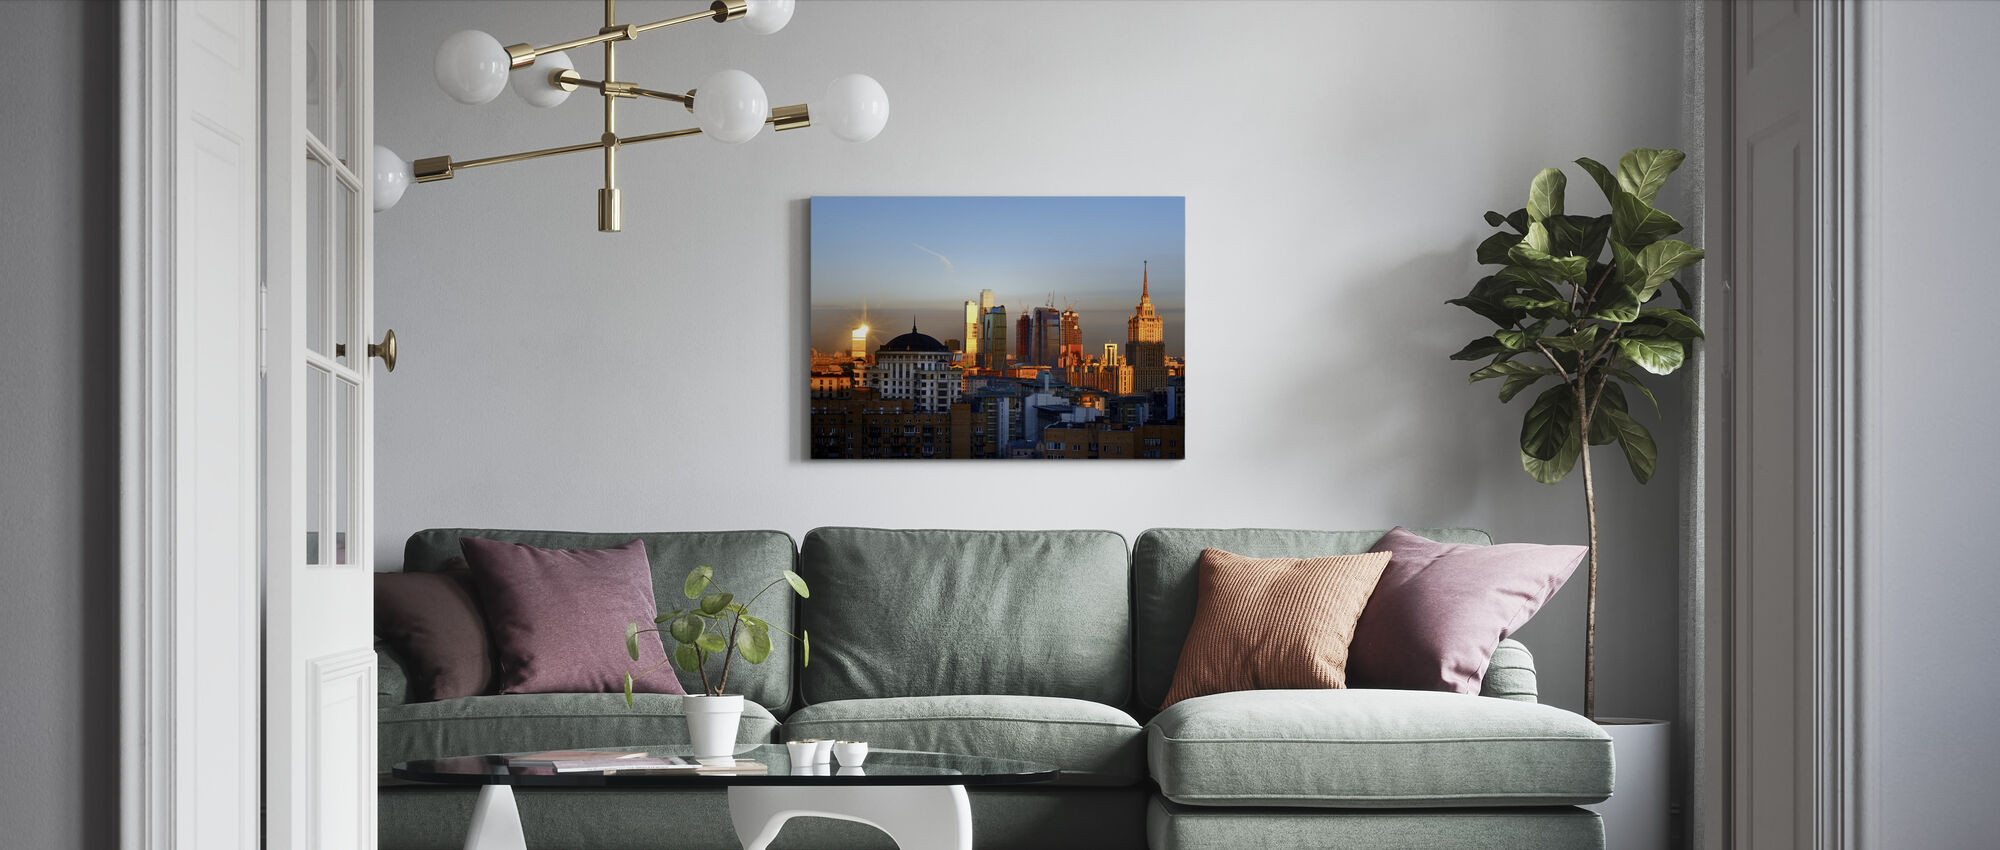 Moscow Skyline at Sunrise - Canvas print - Living Room